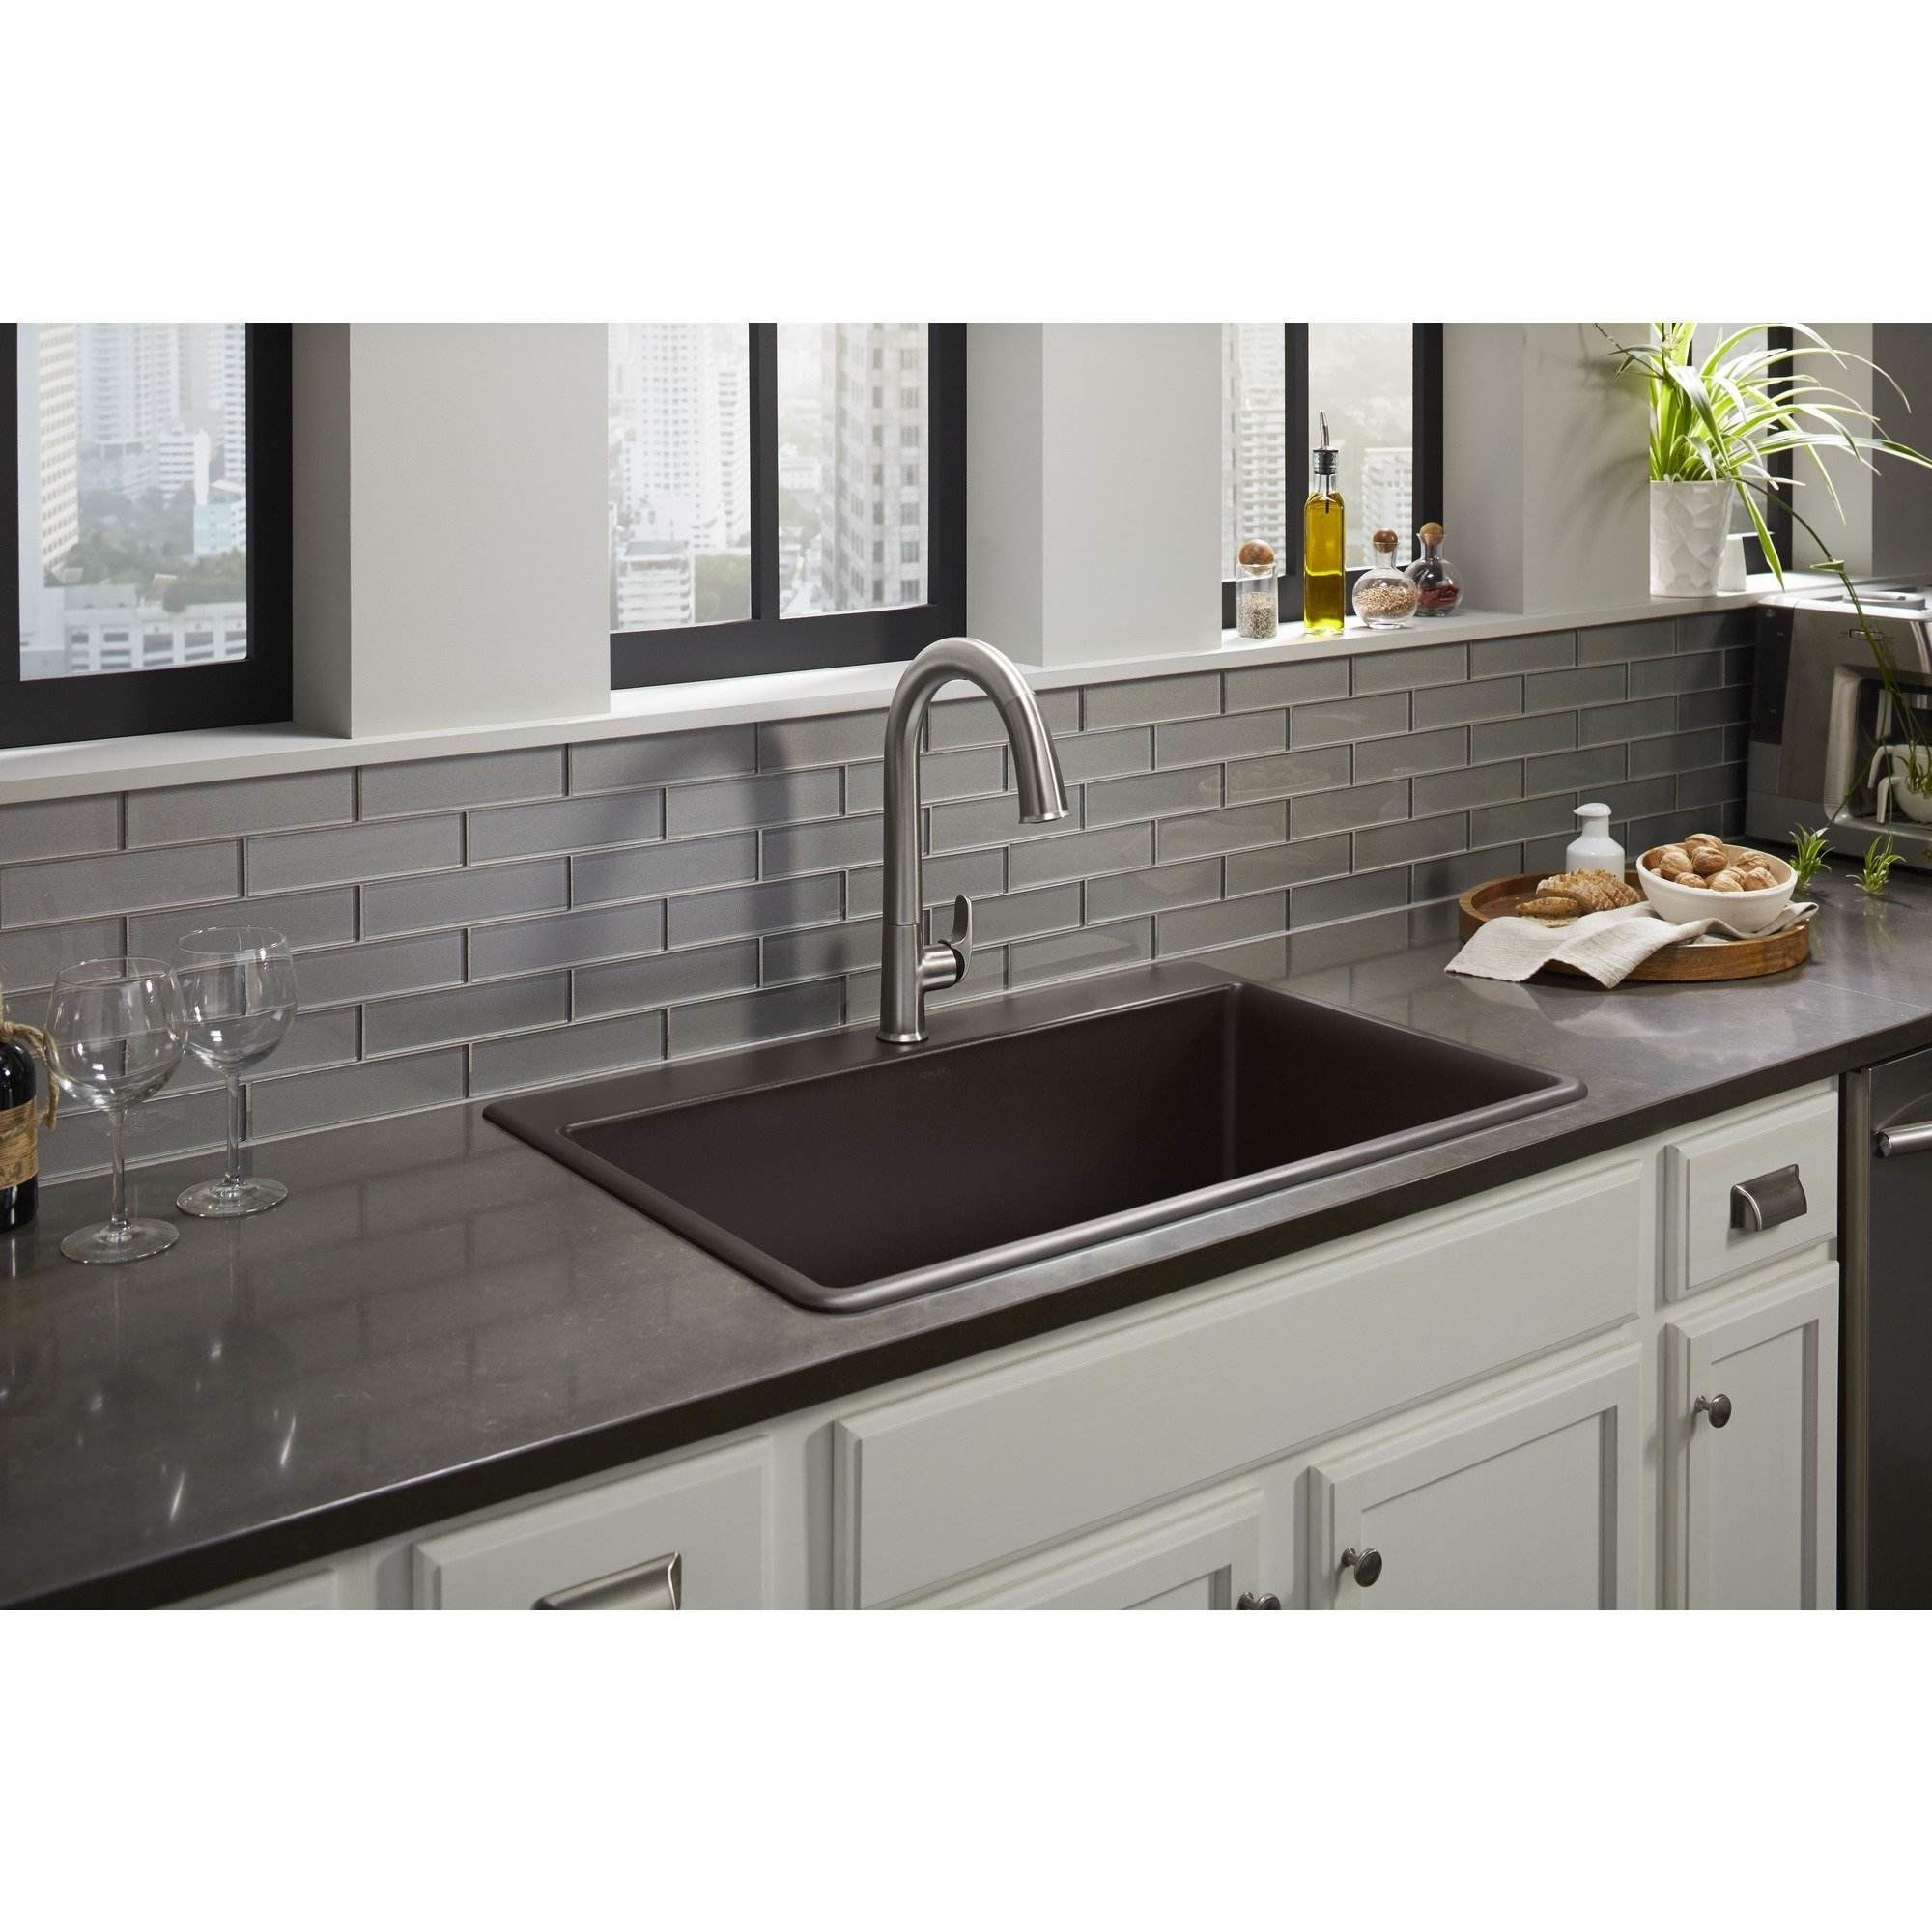 Black Sink For Kitchen: Neoroc Kitchen Sinks In Black